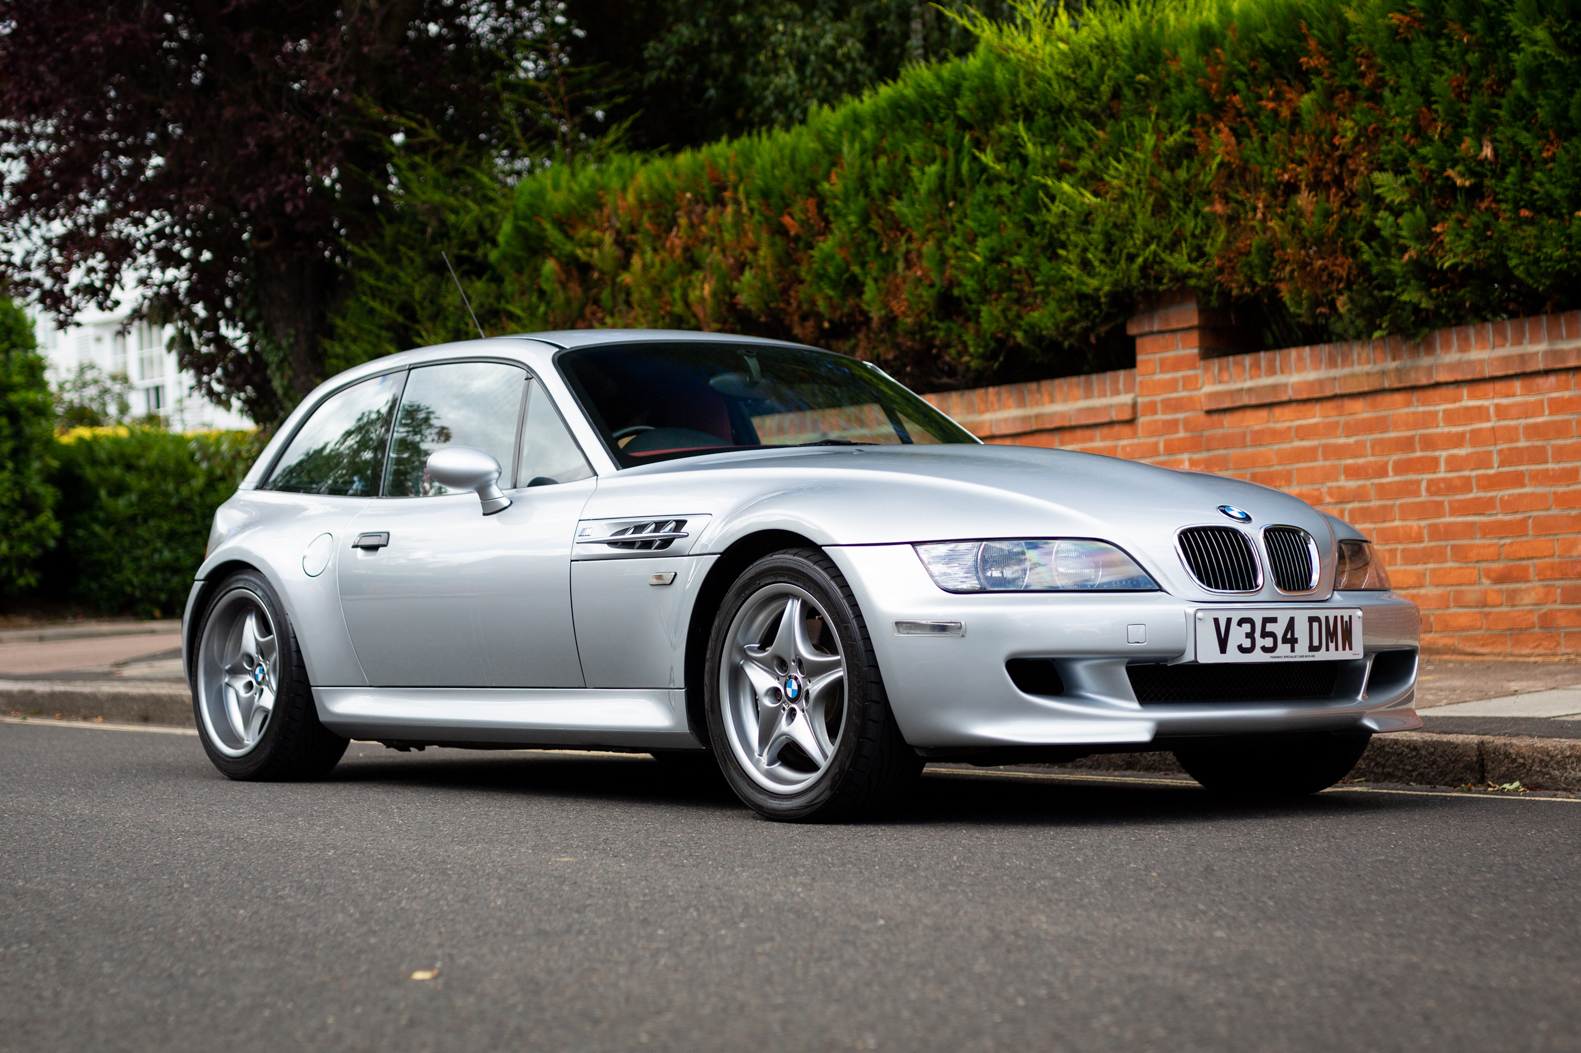 1999 BMW Z3M COUPE - 29,027 MILES